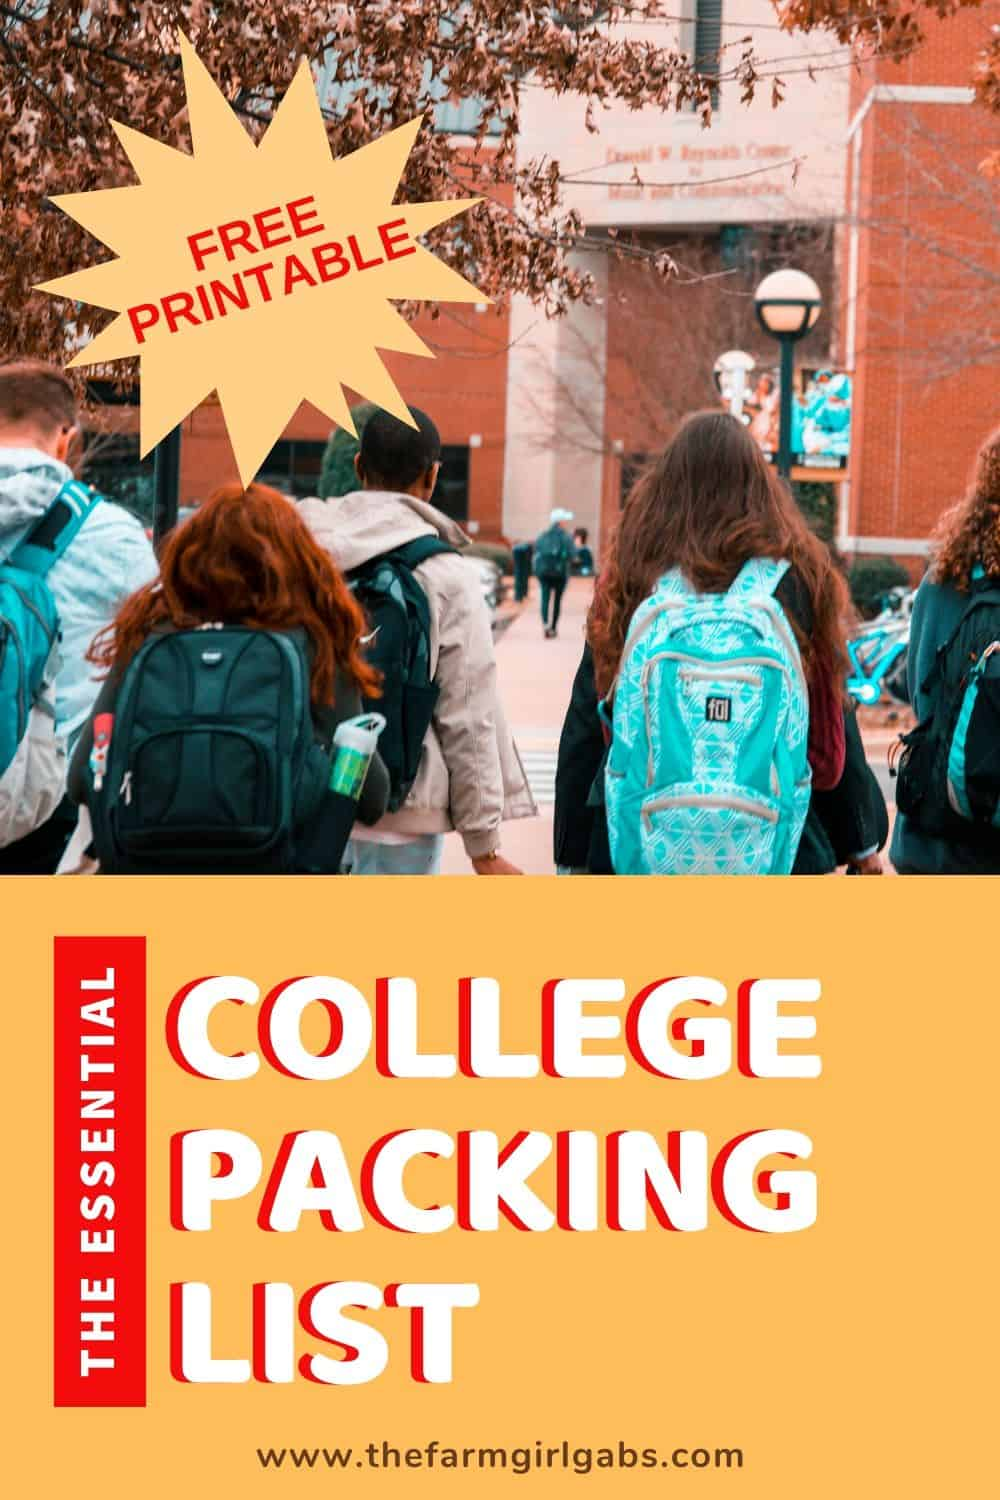 Congratulations! You are the proud parent of a college-bound student? Let the dorm room shopping fun begin! Print out this Essential College Packing List before you start shopping for the college essentials.